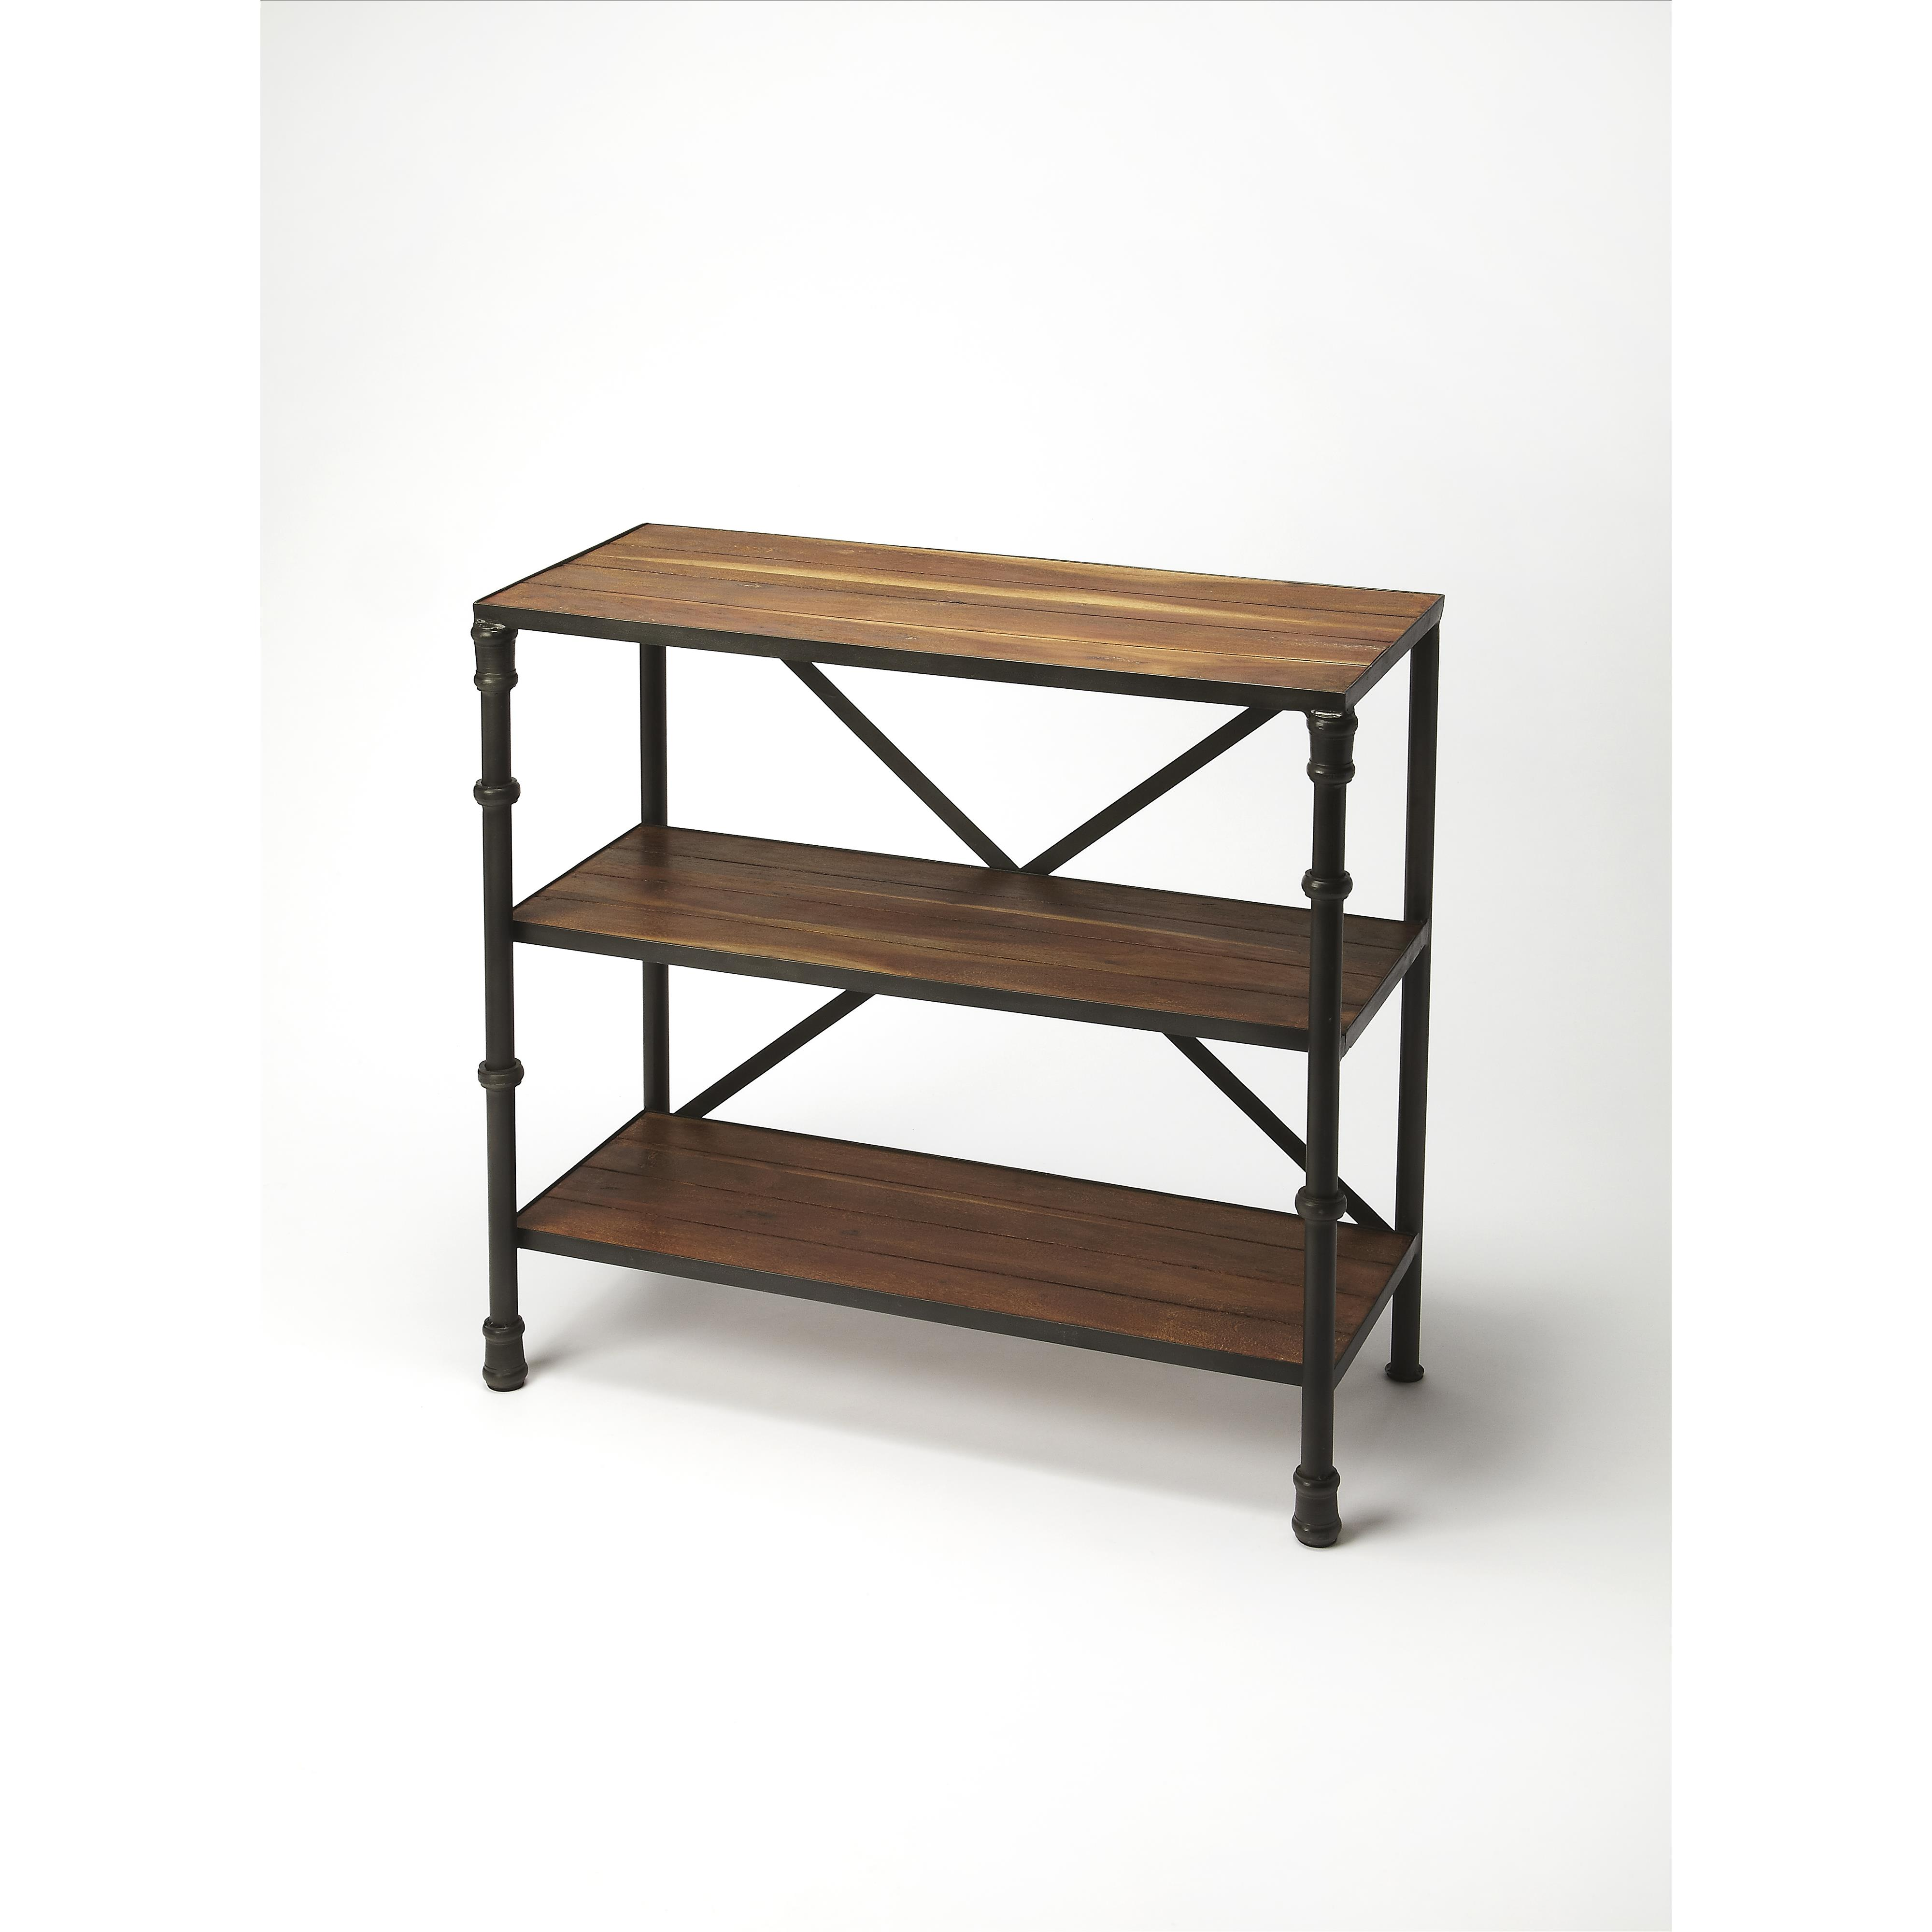 Butler Specialty Company Industrial Chic Console Table - Item Number: 5151330